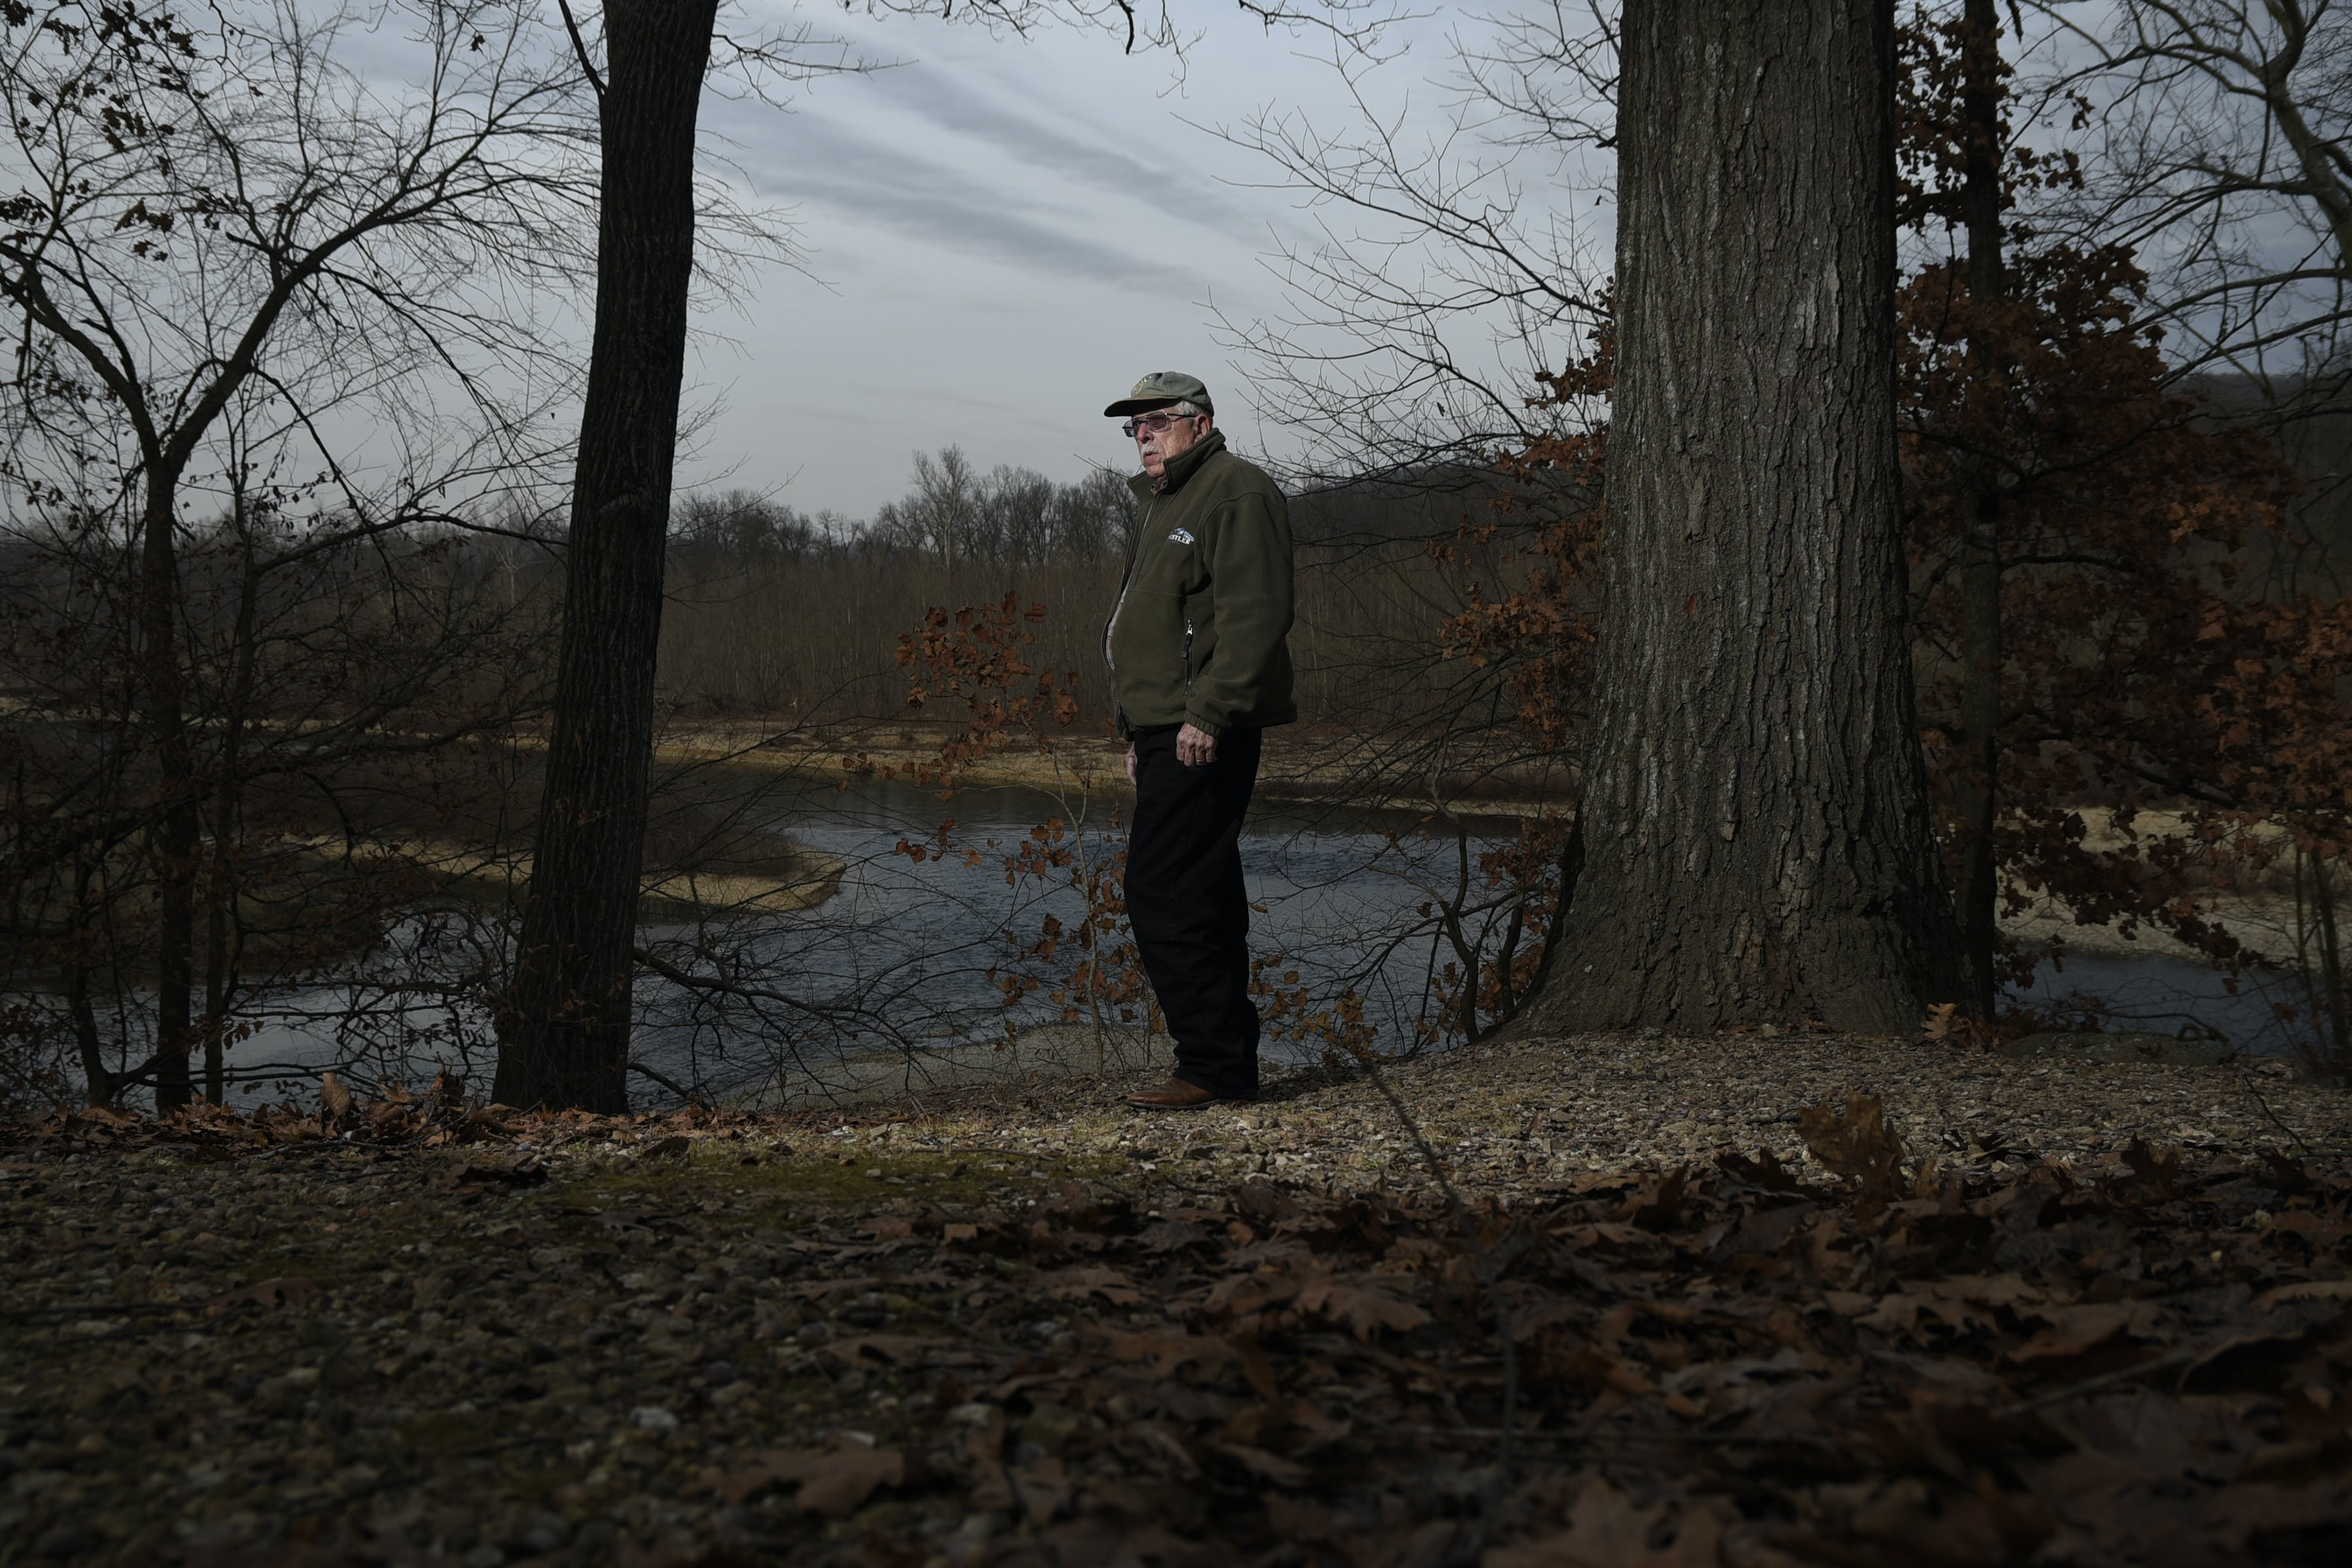 Ed Brocksmith, a co-founder of Save the Illinois River, along its course in Tahlequah, Okla., Jan. 12, 2017. Many residents of eastern Oklahoma are frustrated with Scott Pruitt, who effectively stopped prosecuting environmental crimes during his tenure as attorney general. If confirmed, he would head the EPA as a member of Donald Trump's cabinet. (Nick Oxford/The New York Times)